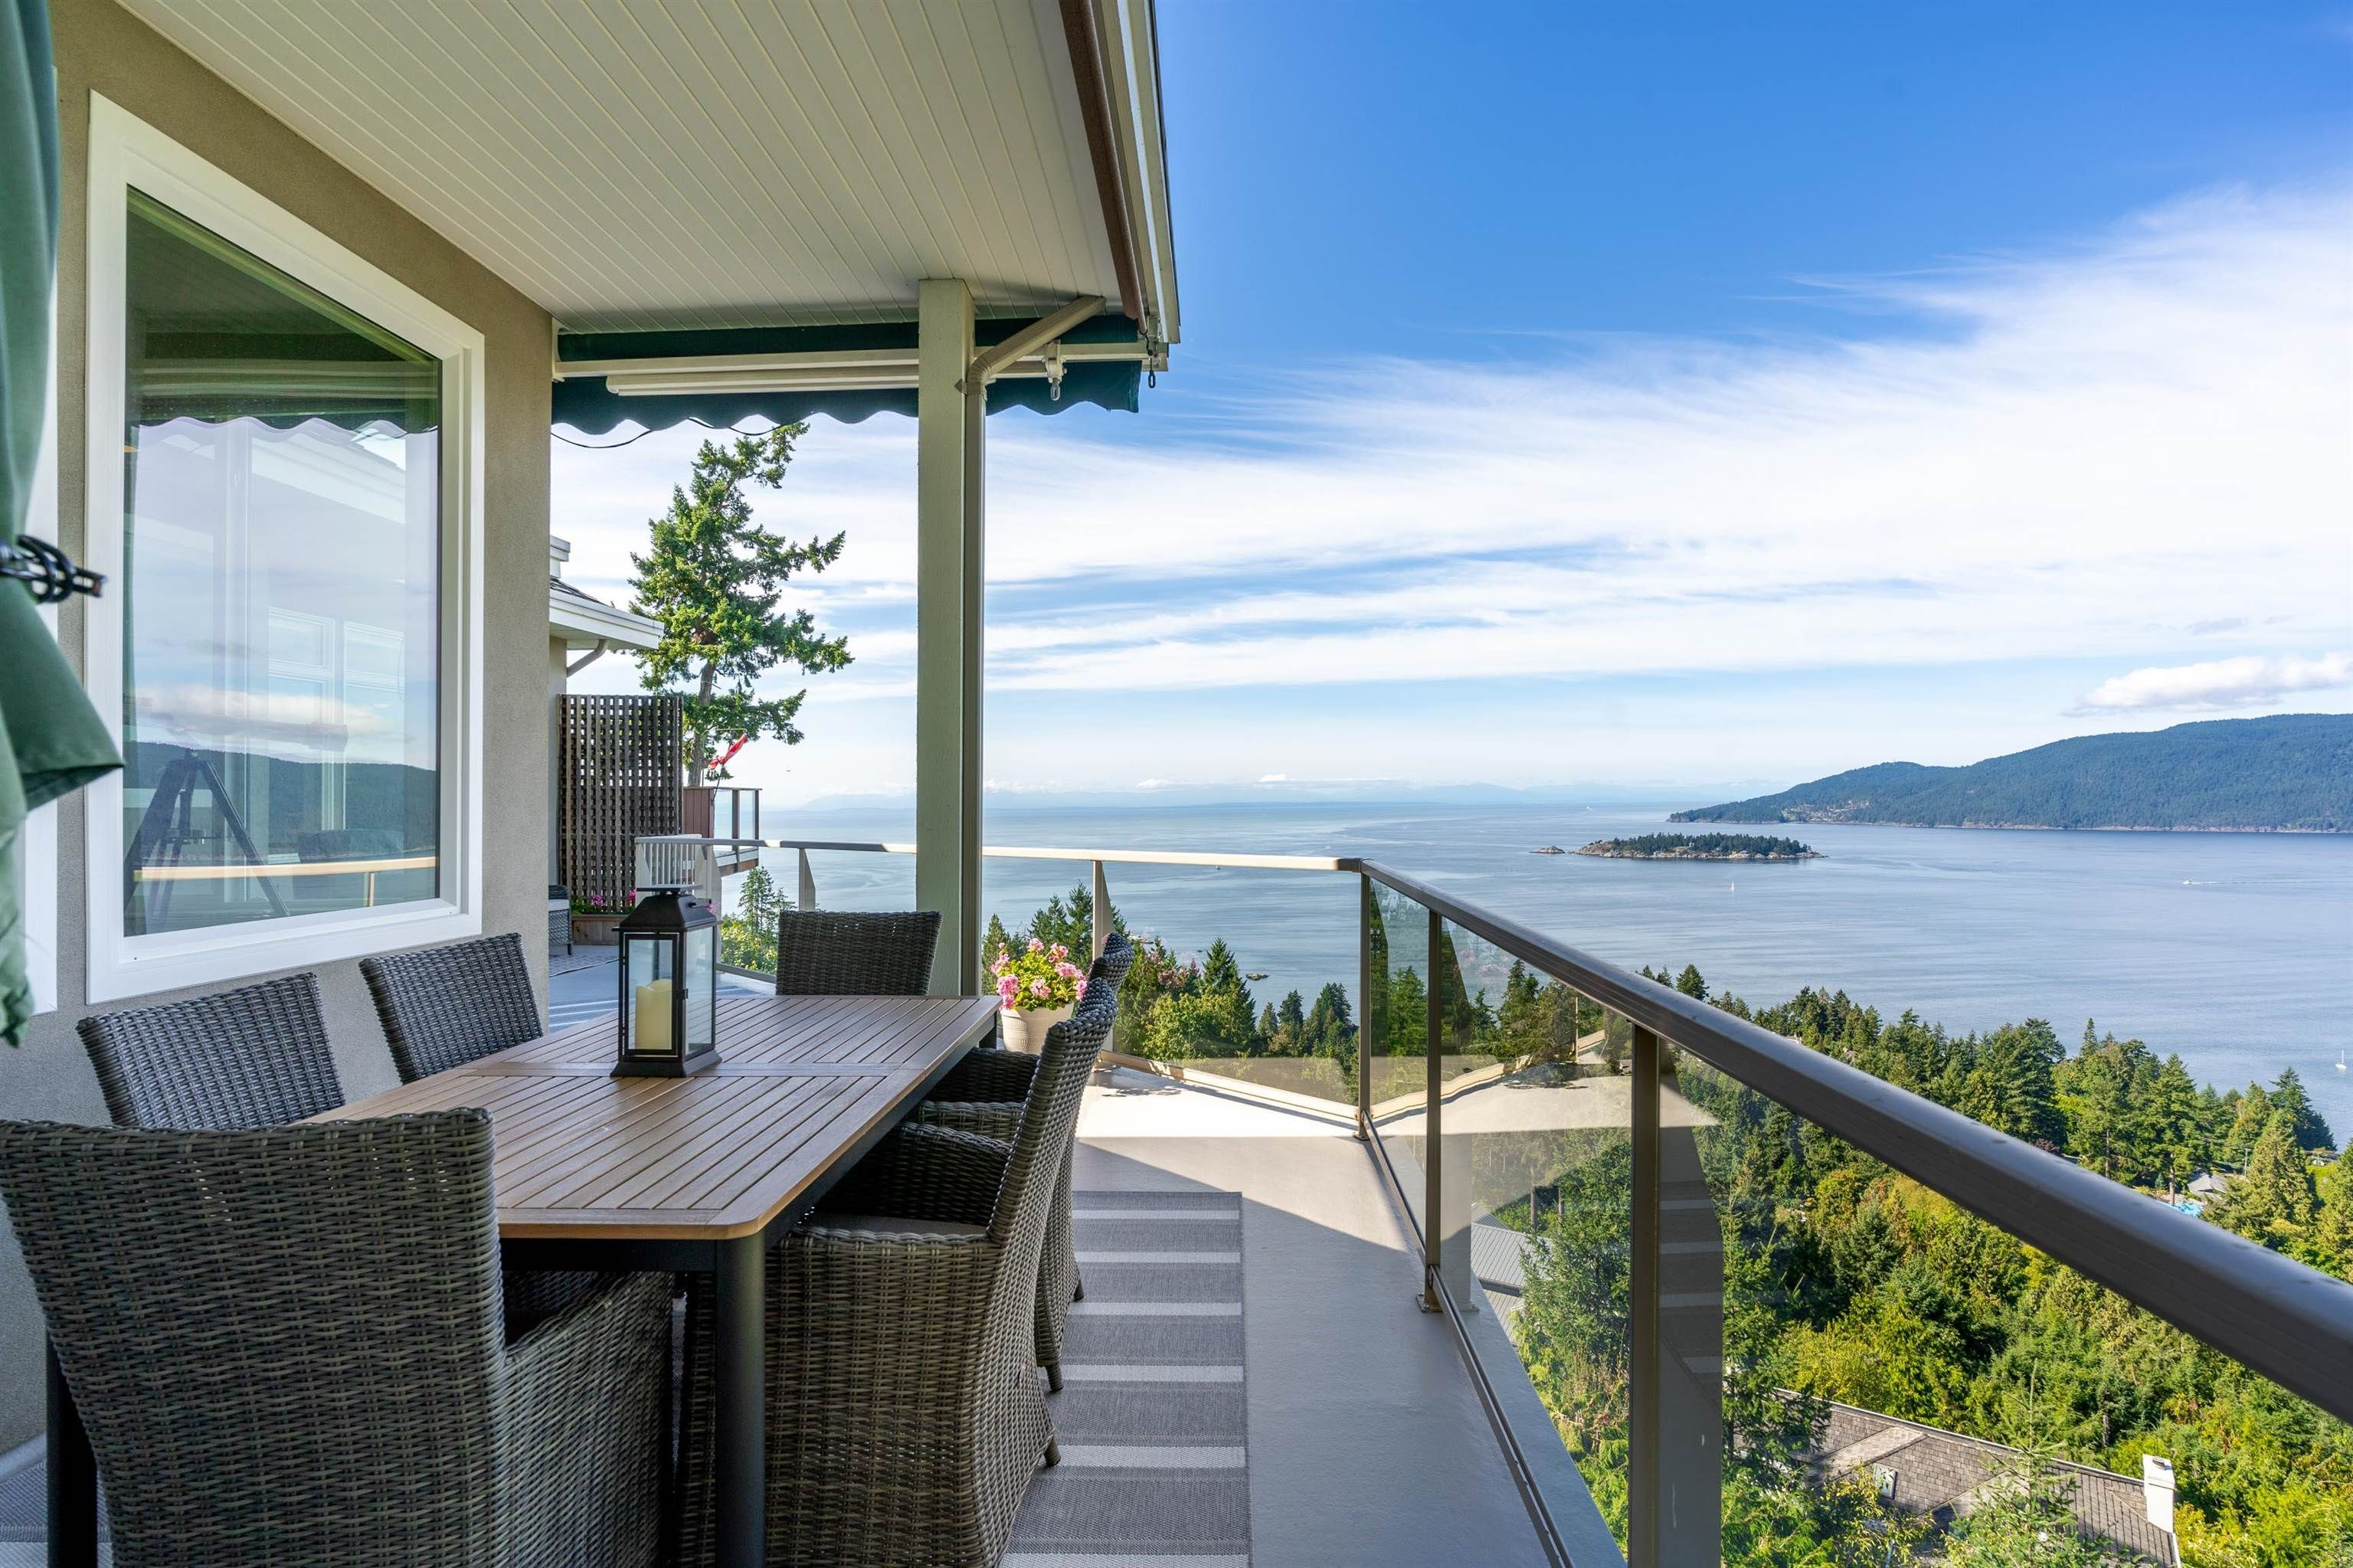 Main Photo: 5377 MONTE BRE Court in West Vancouver: Upper Caulfeild House for sale : MLS®# R2621979